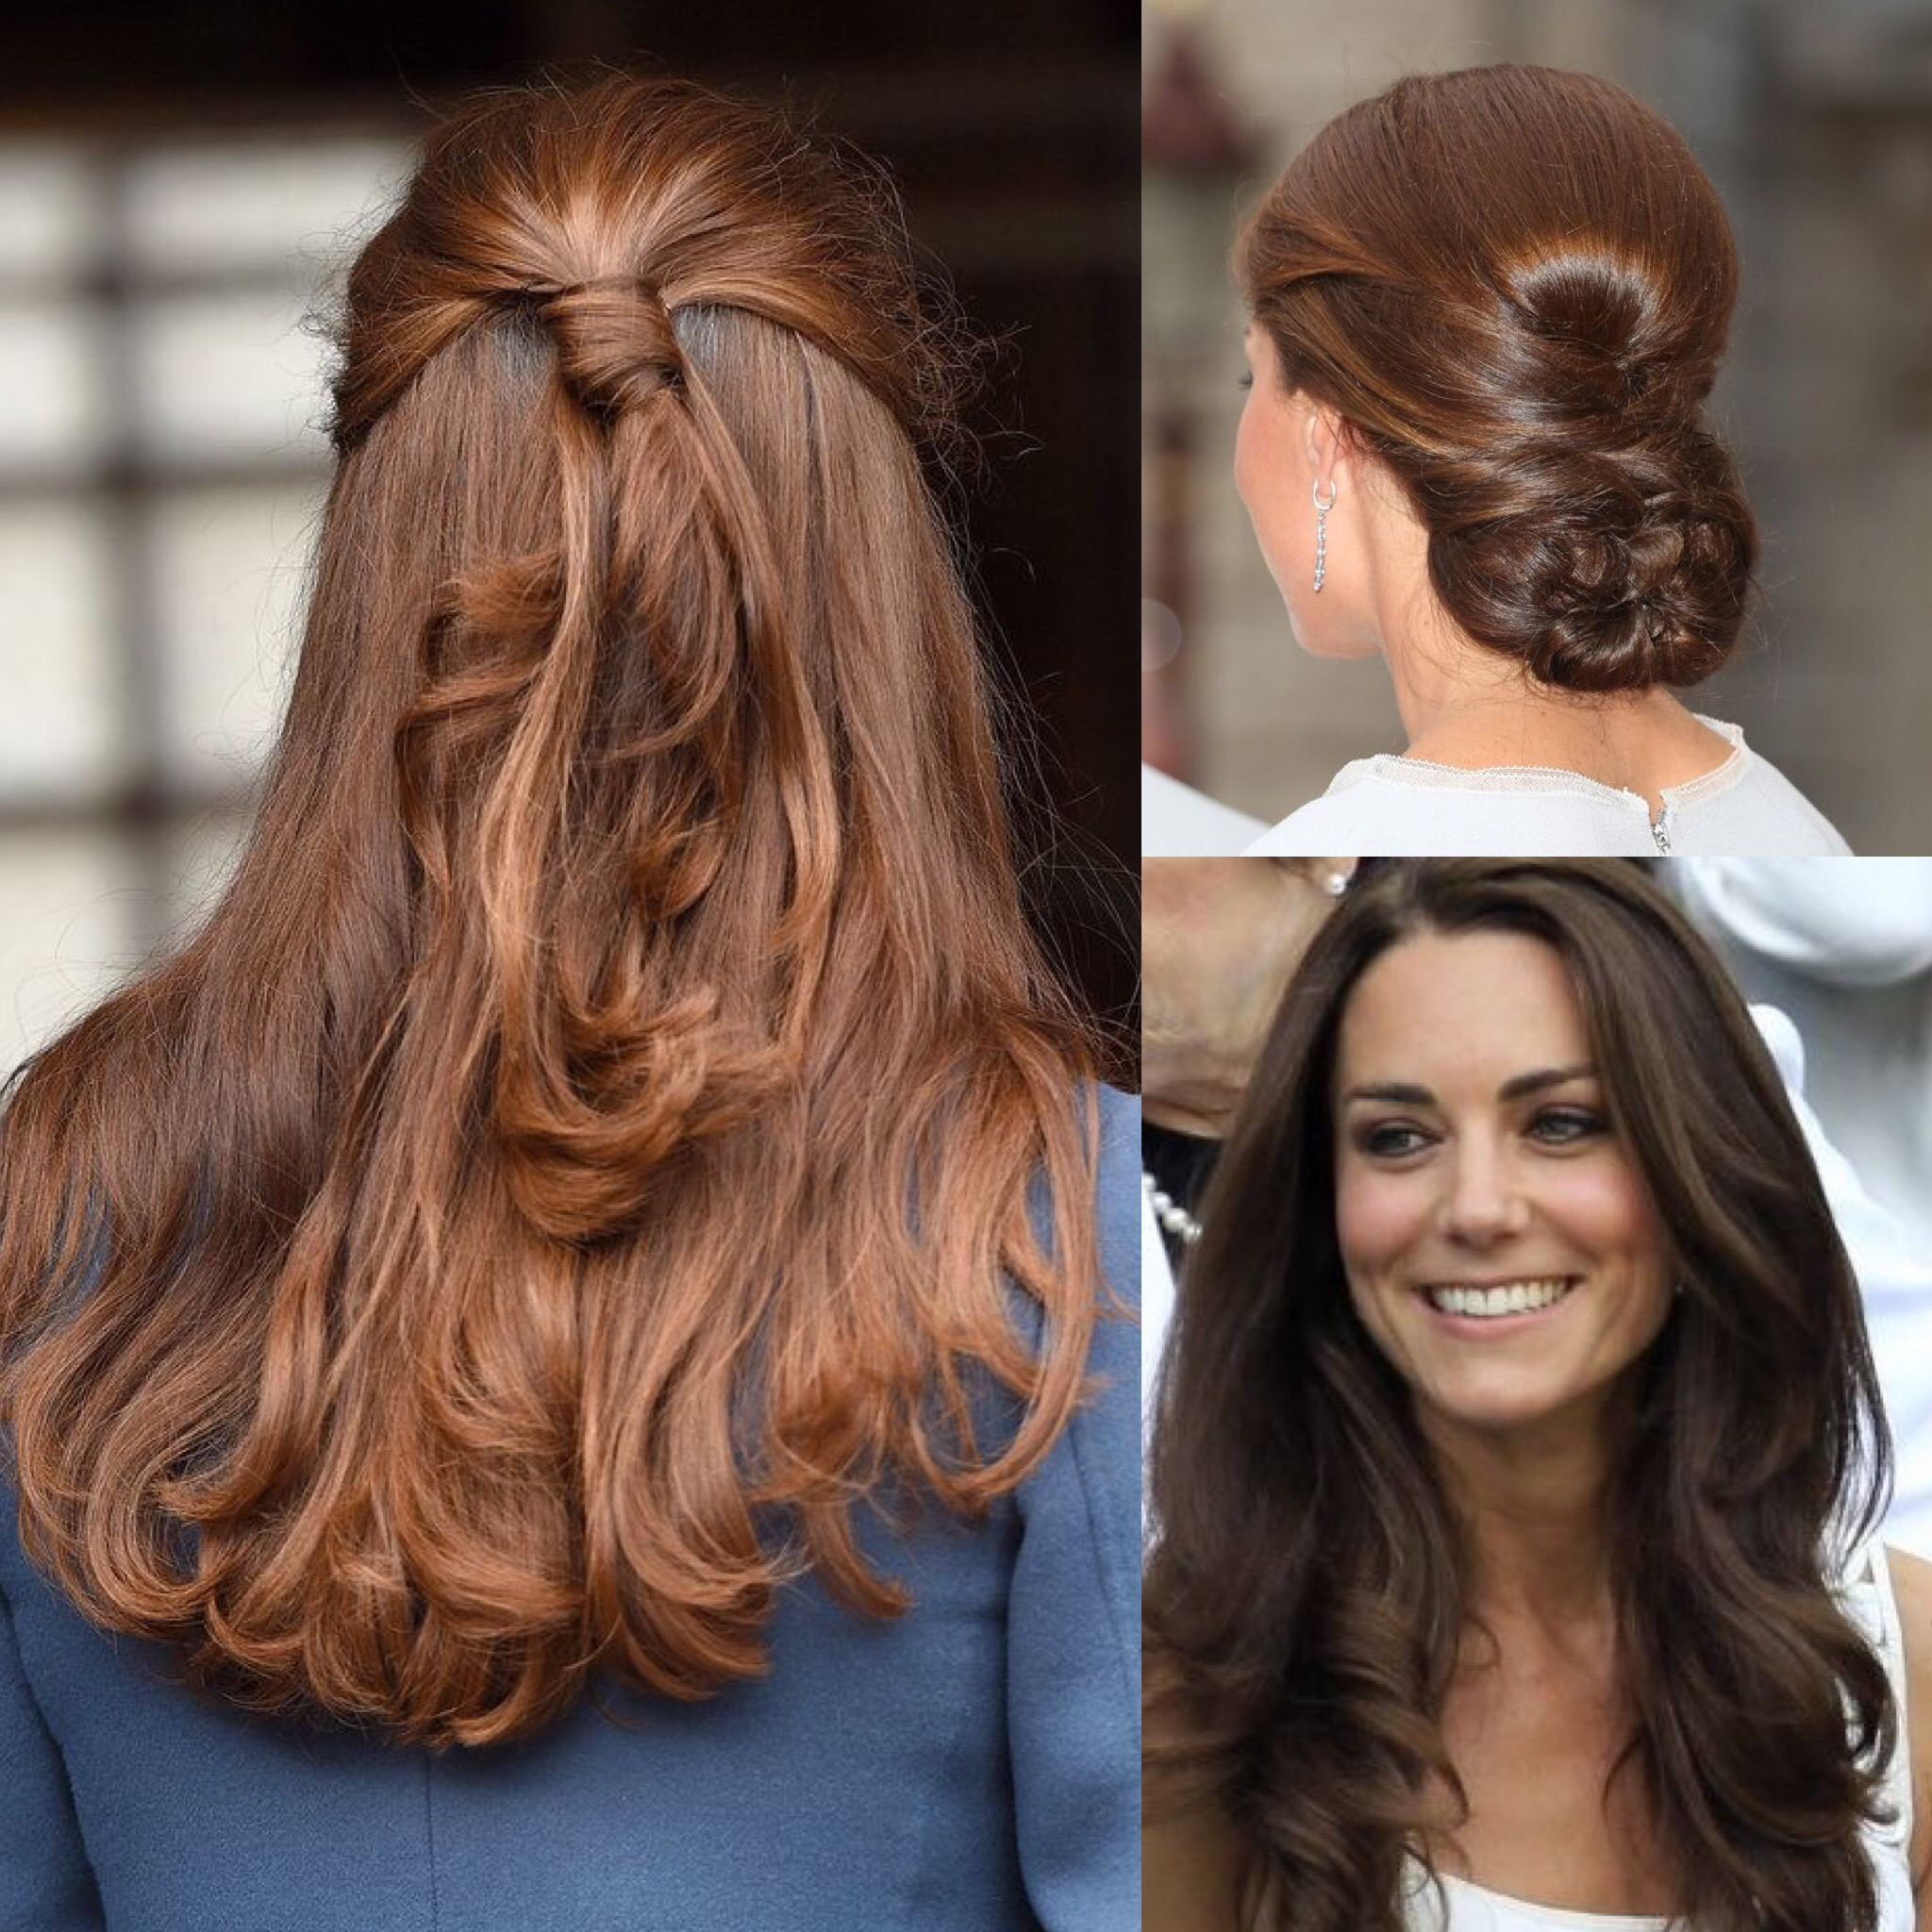 Kate Middleton S Looks And Her Incredible Metamorphosis Consulente Di Immagine Rossella